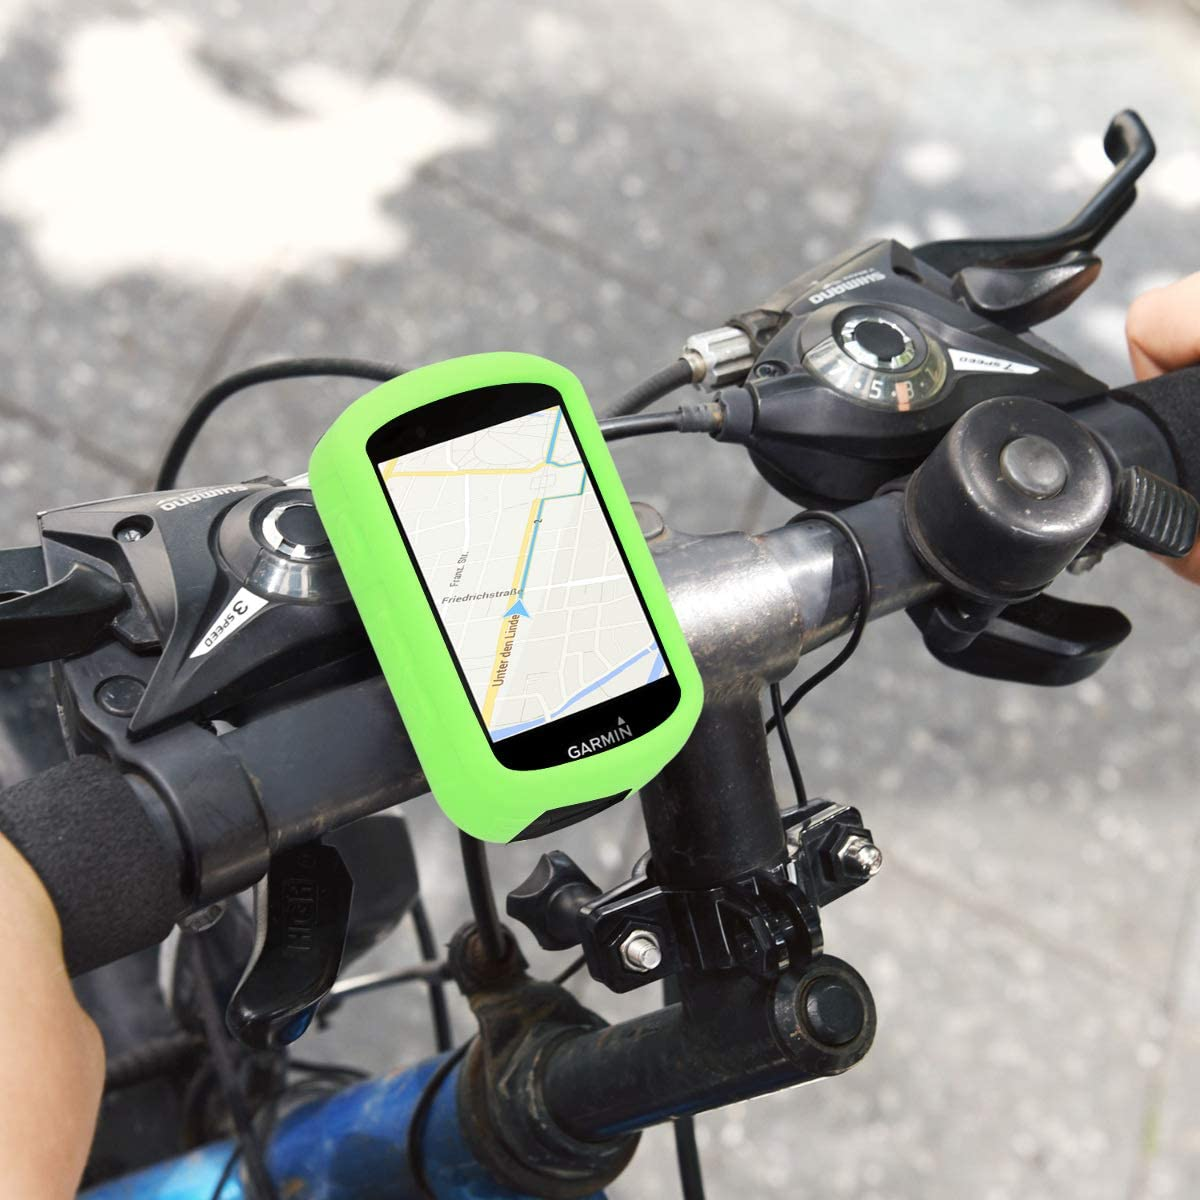 White Soft Silicone Bike GPS Navigation System Protective Cover kwmobile Case for Garmin Edge 530